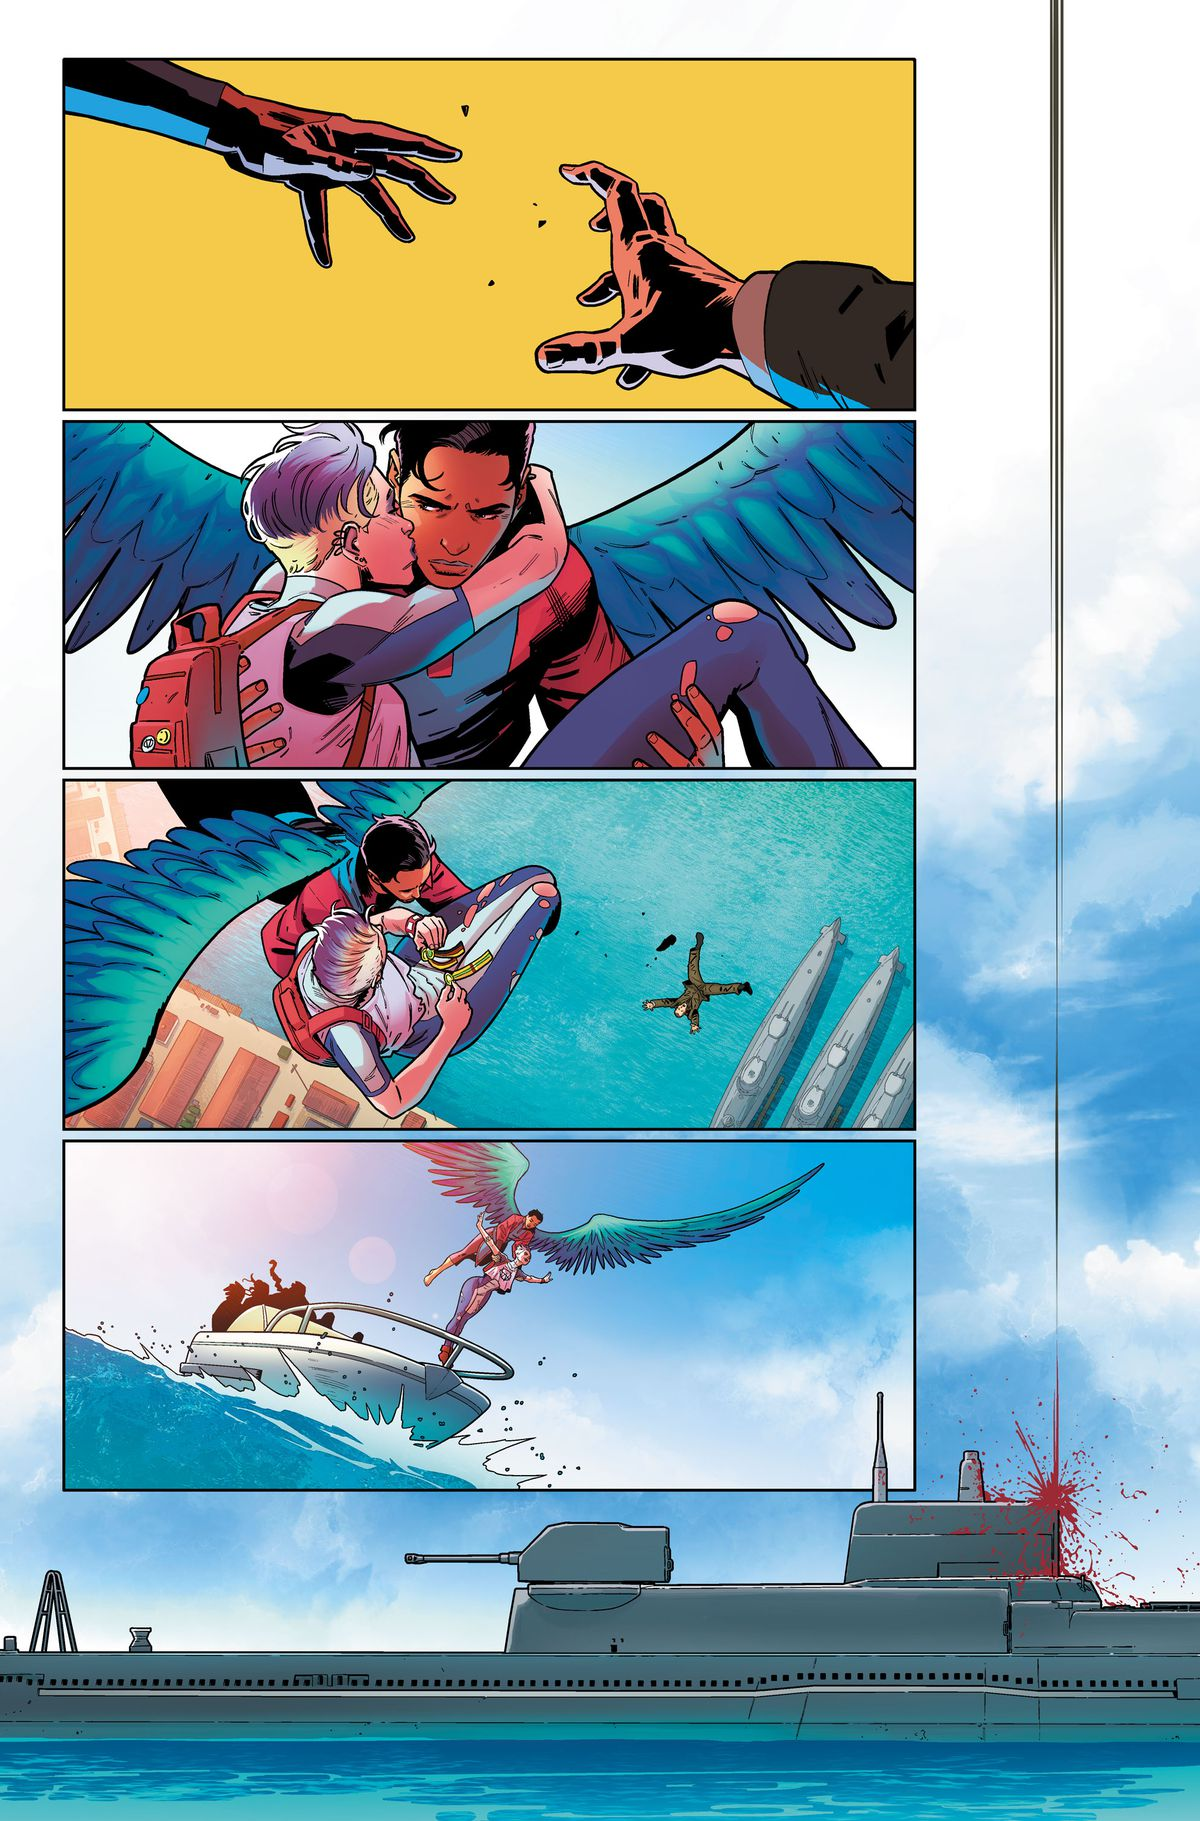 Aerie drops the man, while Blink kisses them on the cheek. They land on a speedboat, while the man makes a bloody impact from a great height on the tower of a military submarine, in an unlettered page from Suicide Squad #1, DC Comics (2019).